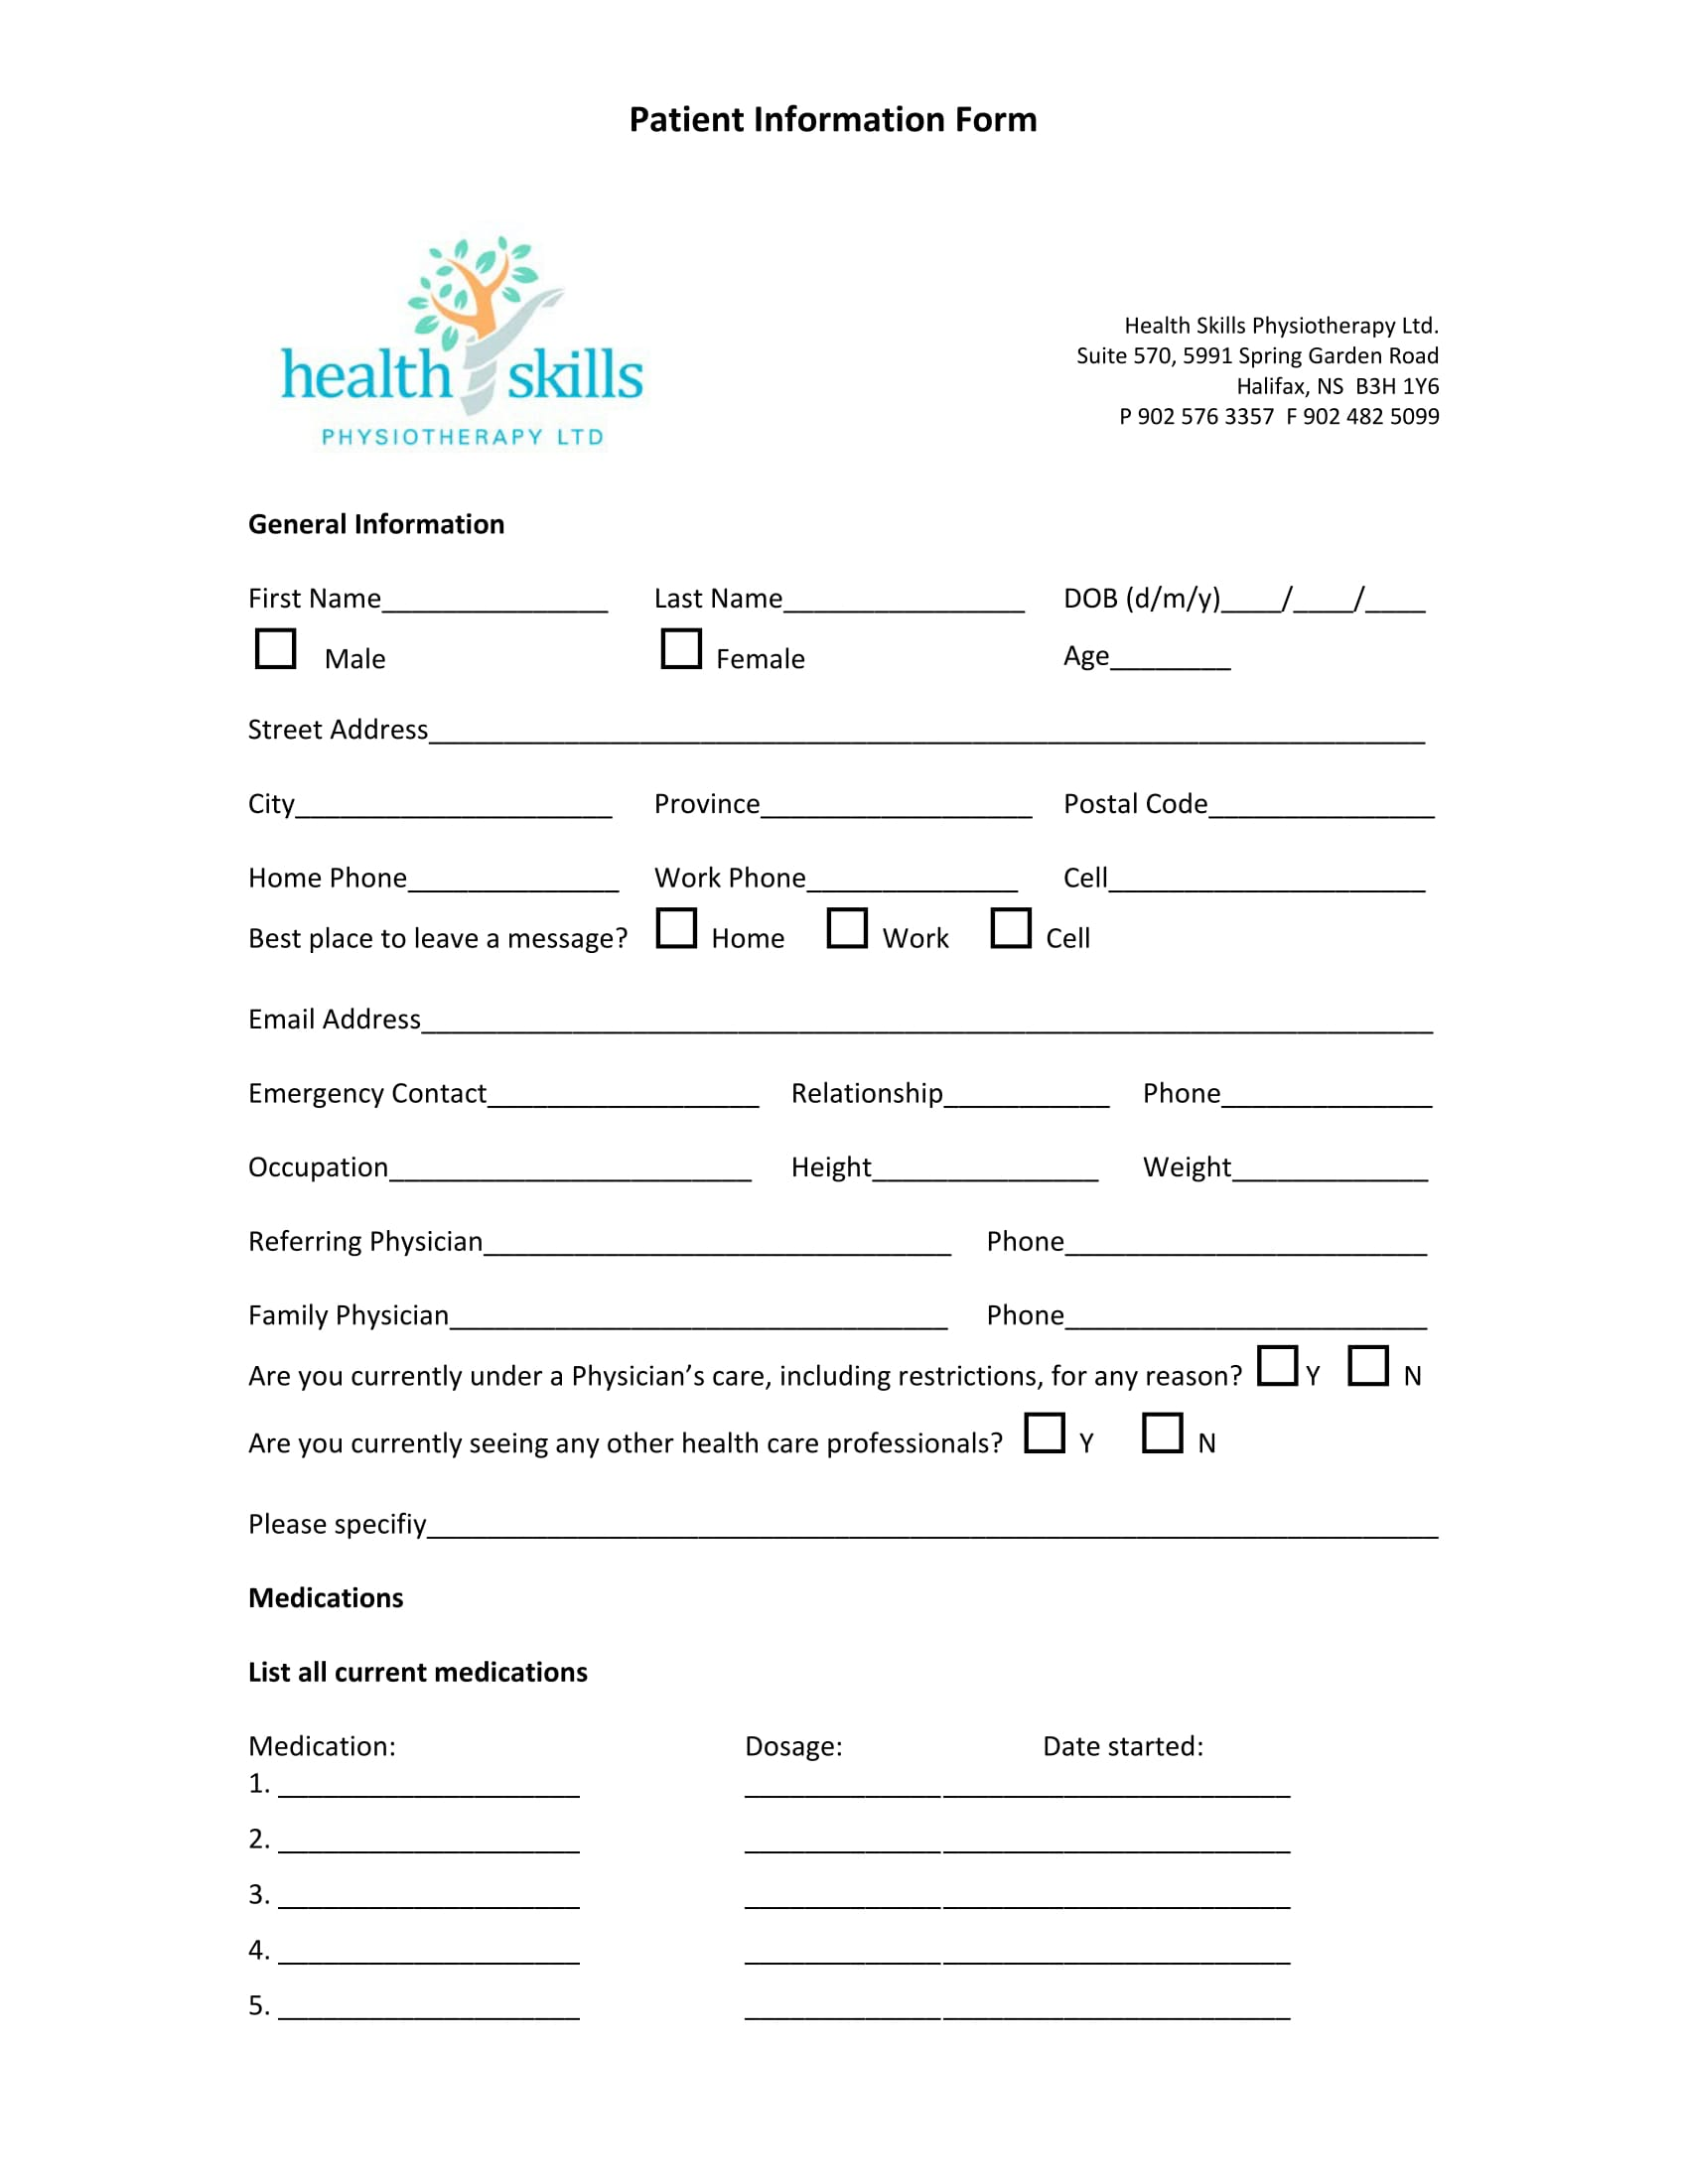 patient information form 1